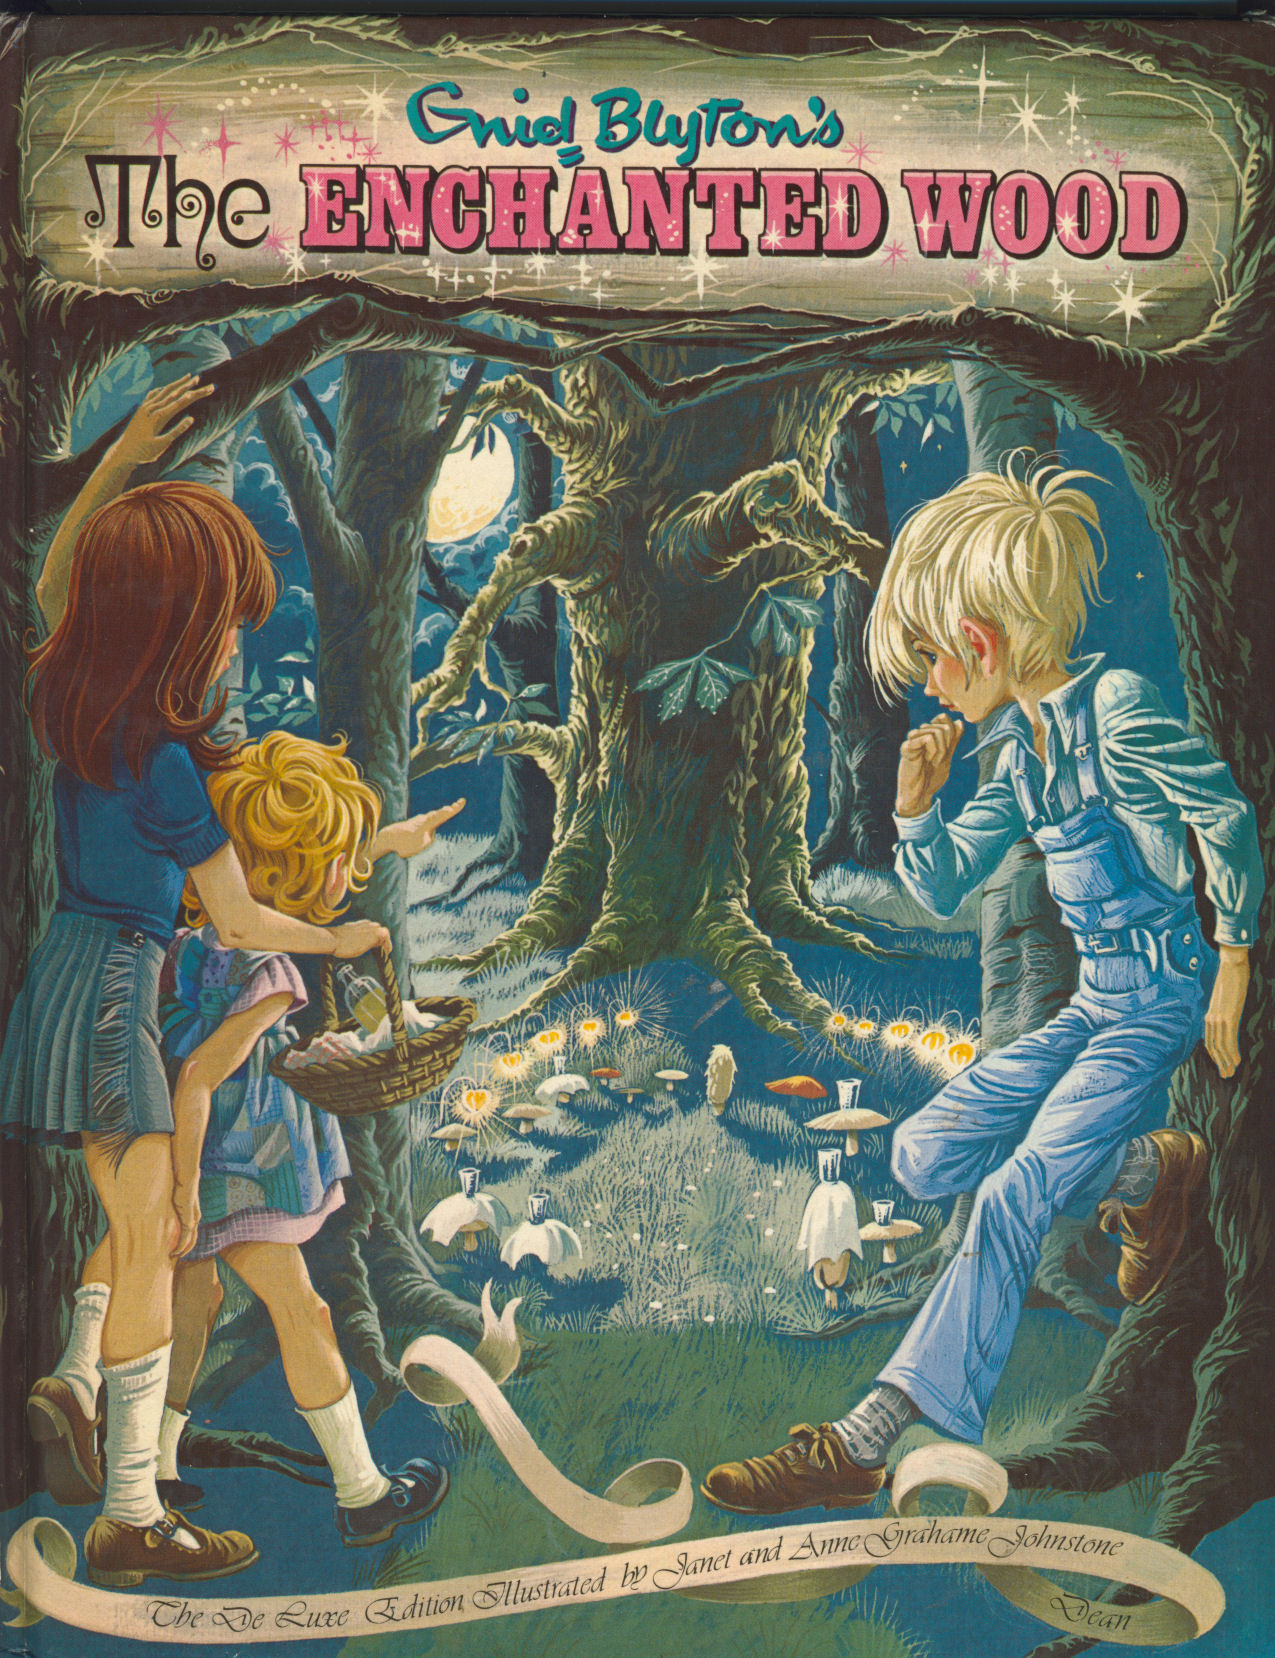 Janet Anne Grahame Johnstone Enid Blyton The Enchanted Wood deluxe